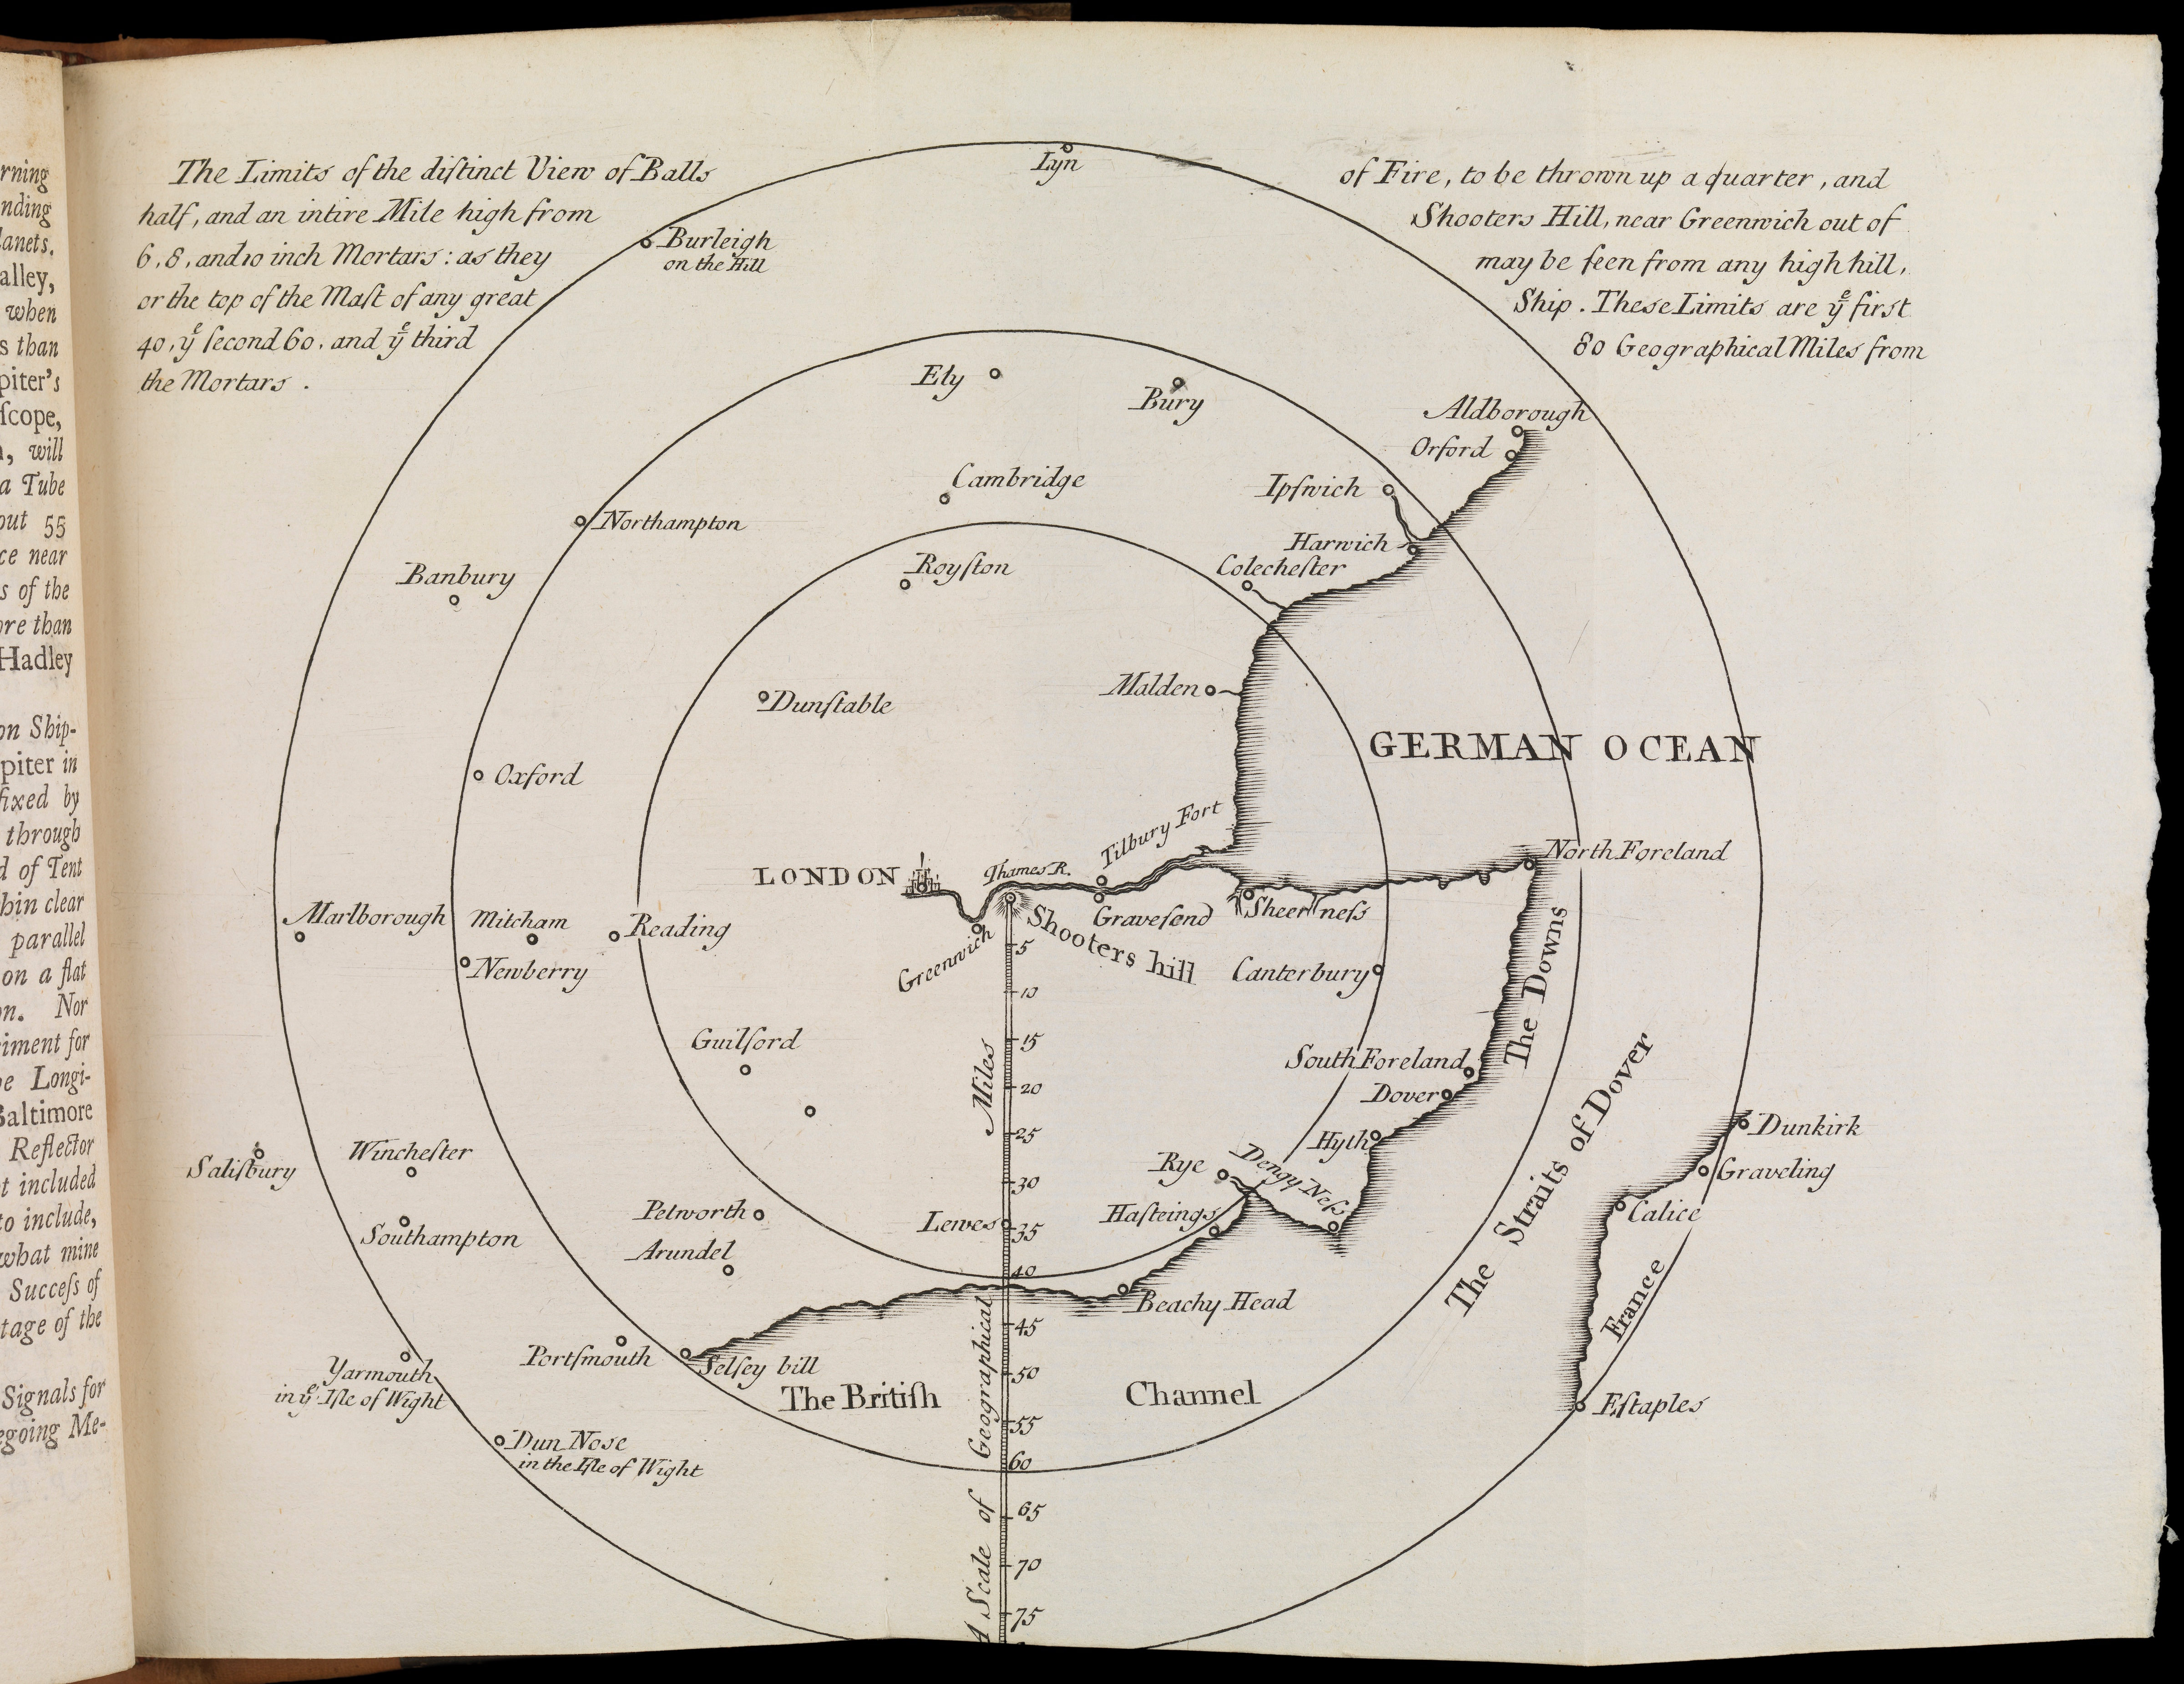 Plate from William Whiston, The longitude discovered